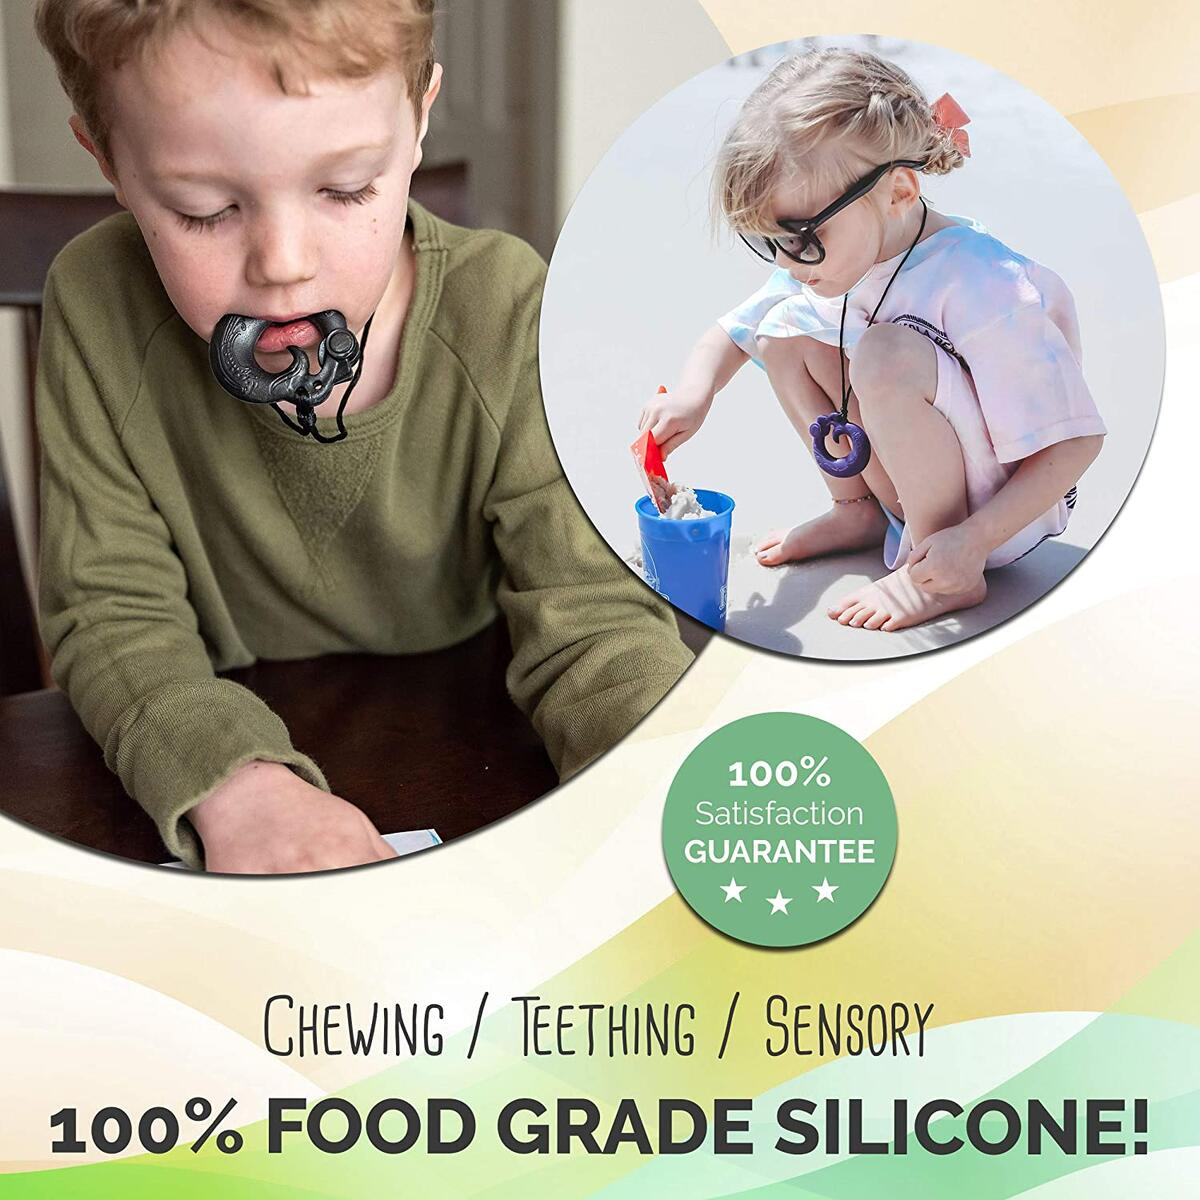 Phoenix Silicone Chew Necklace - Gender Neutral Teething Necklace for Children